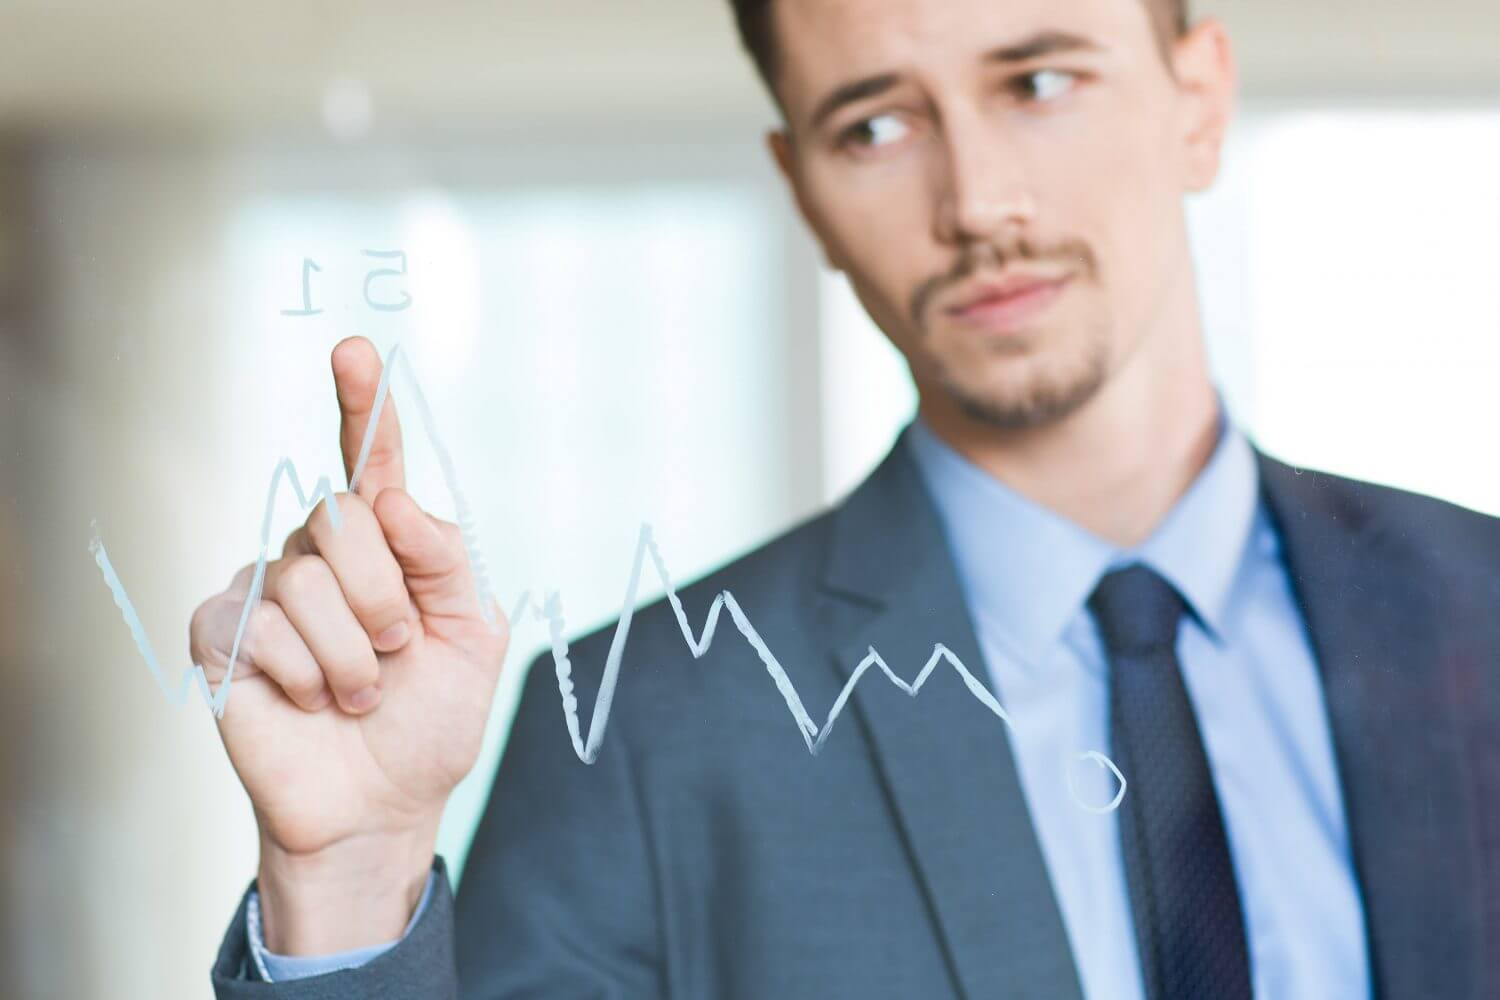 a business man is pointing at graph to analyse trends